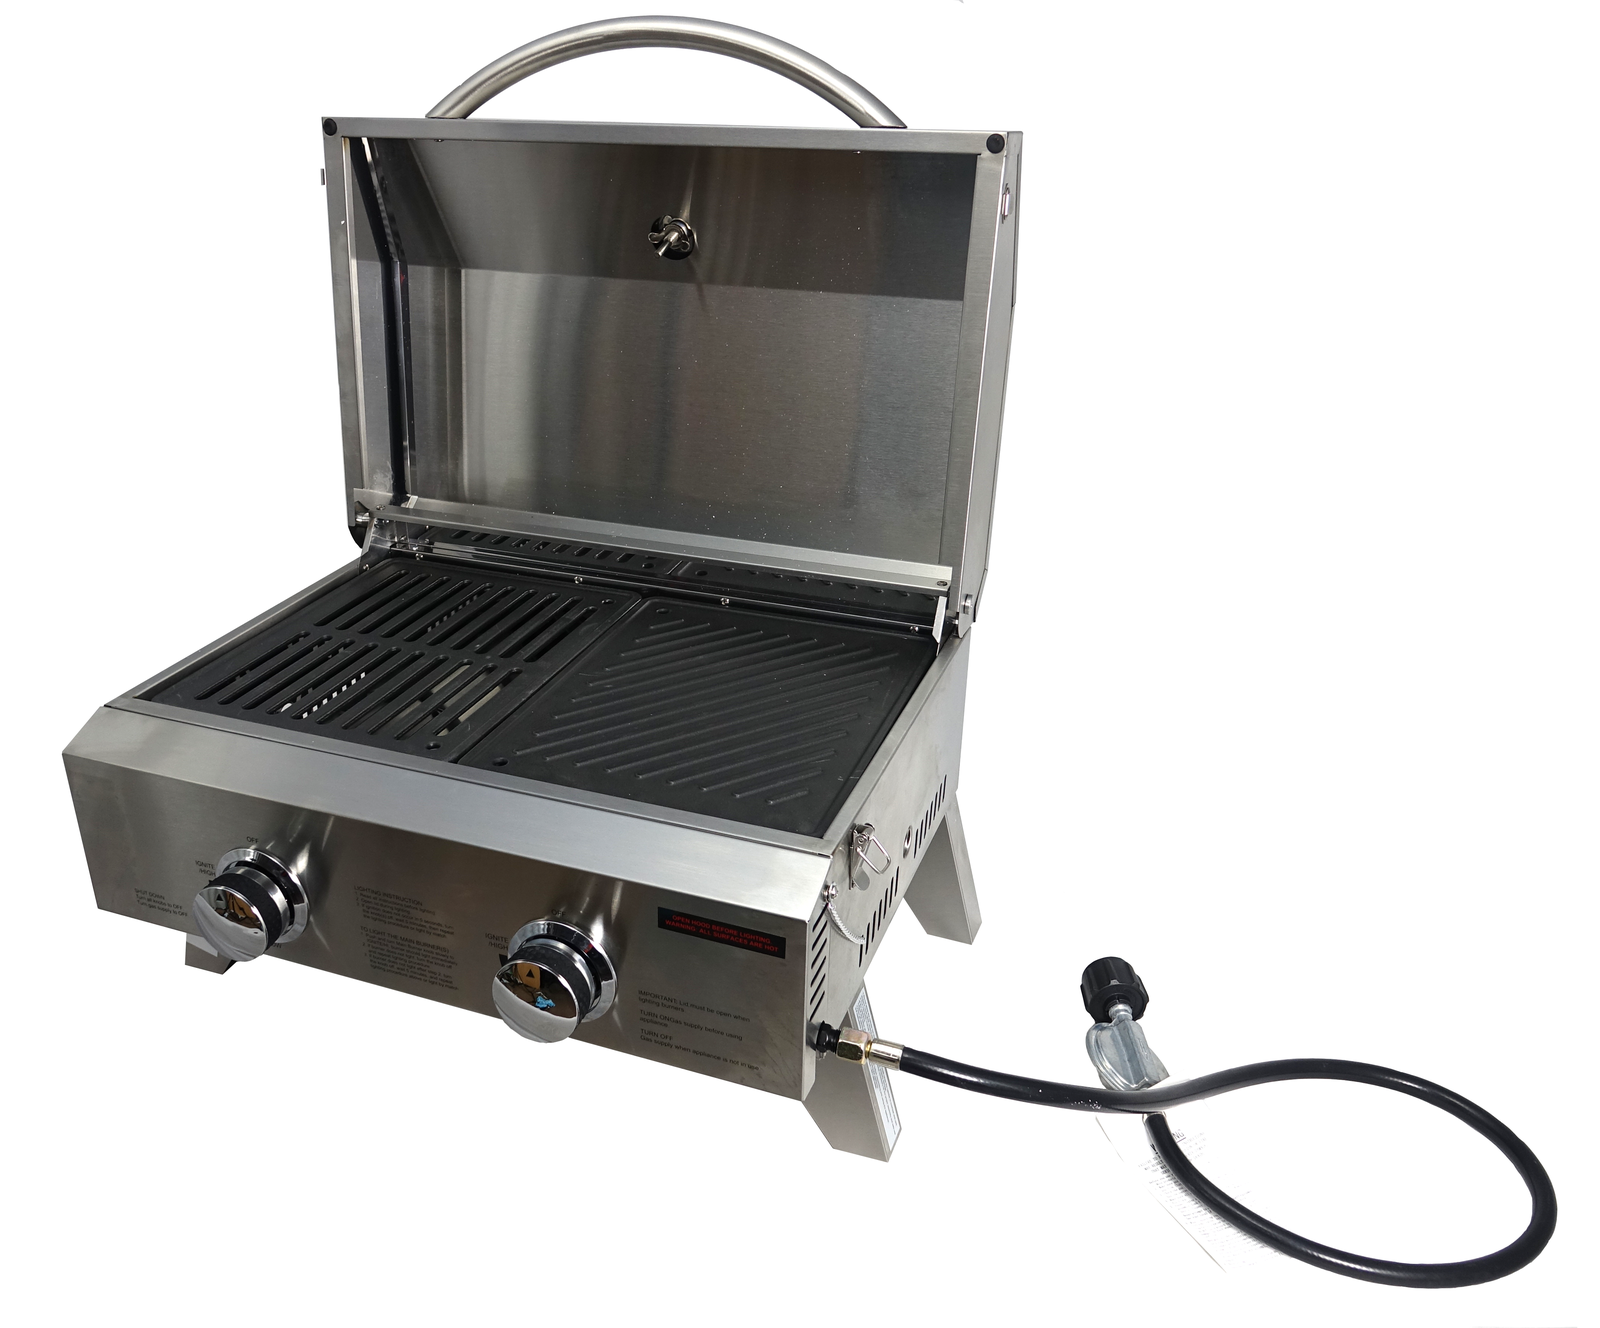 Portable BBQ Grill - Stainless Steel 2 Burner with Split Cast Iron Hotplate & Grill image